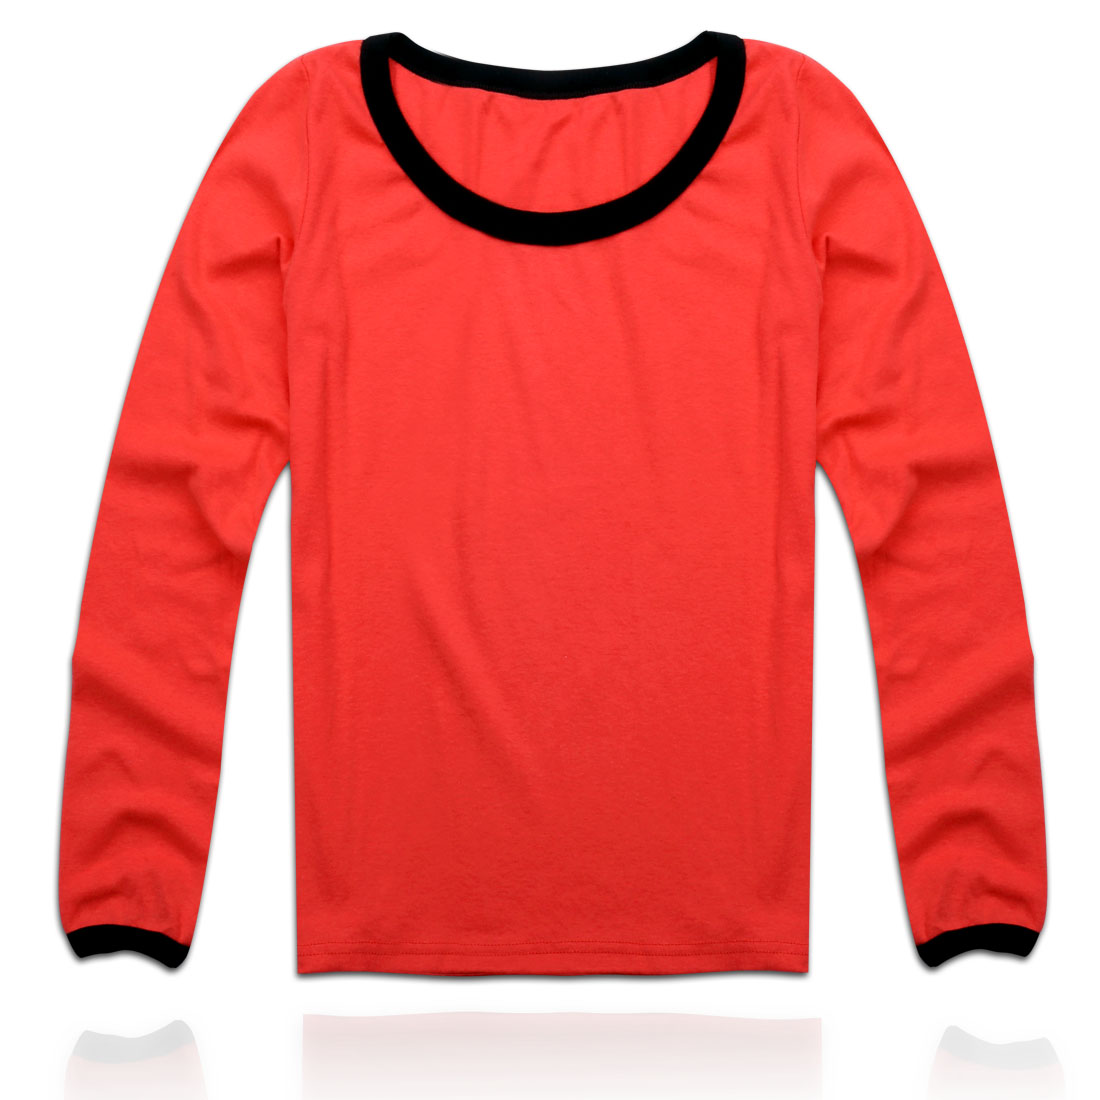 Woman Simple Casual Round Neck Elastic Skivvi Shirt Orange Red XS